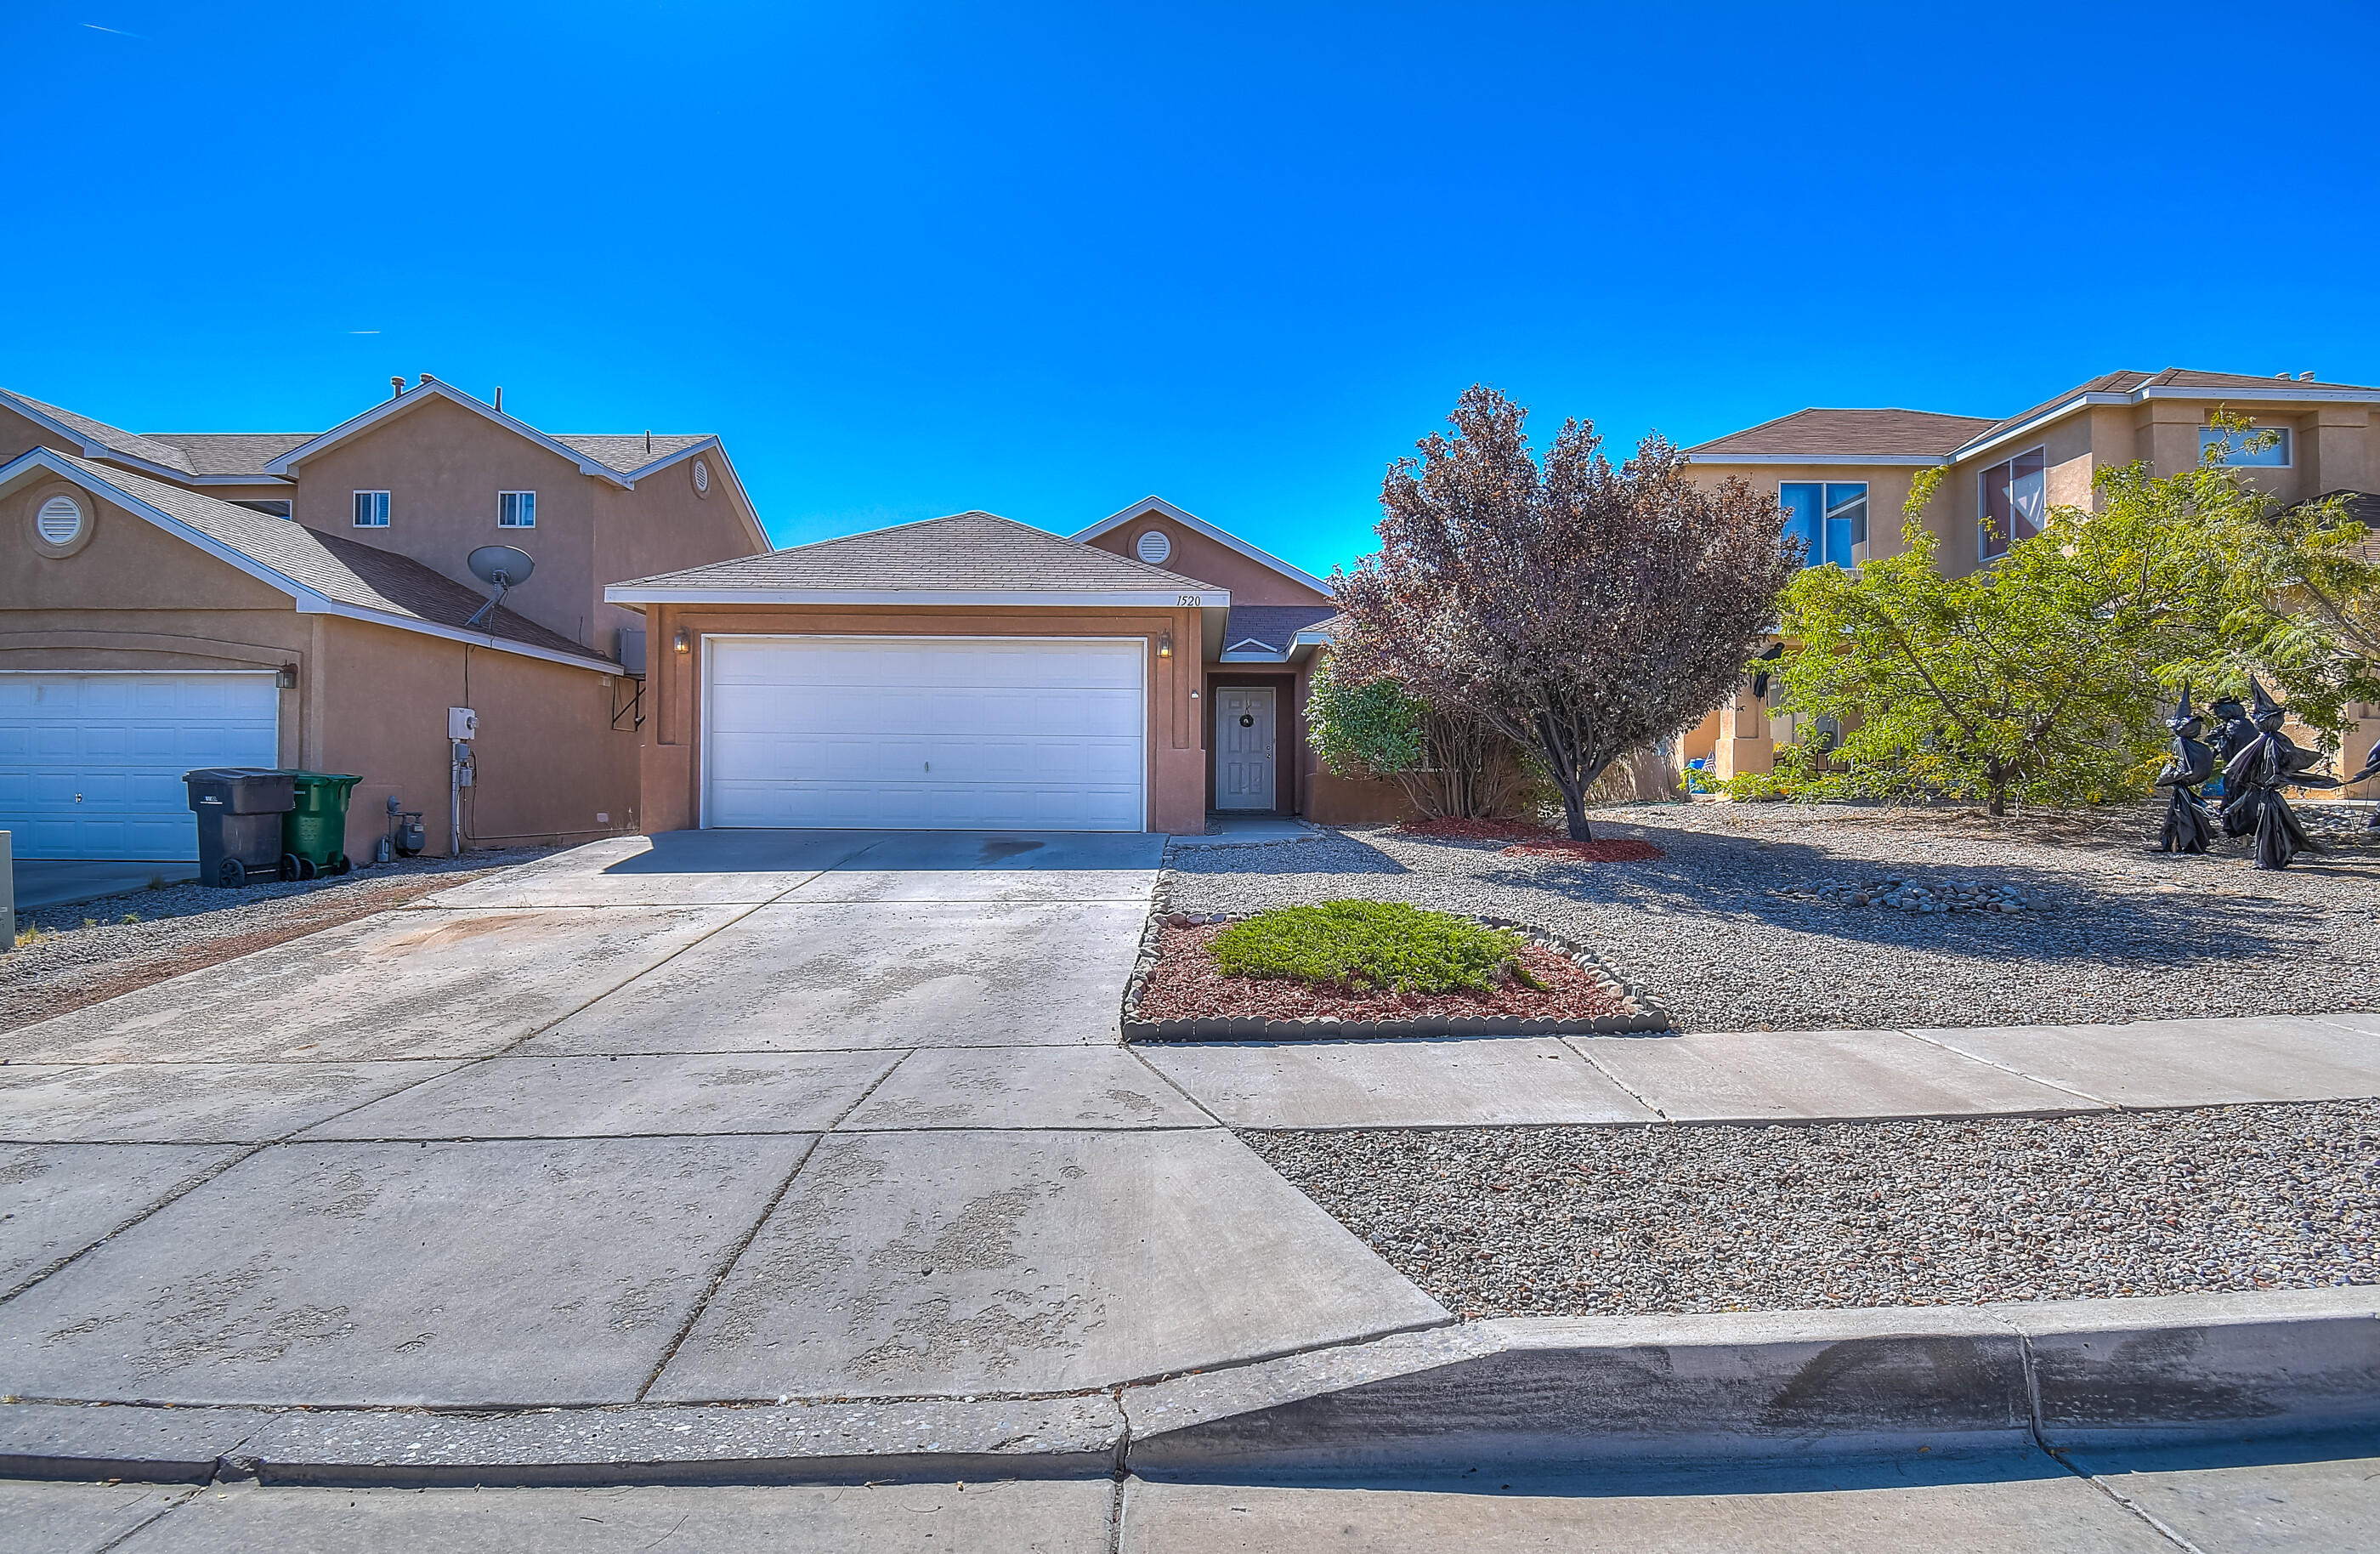 Don't miss out on this lovely 4 bedroom, 2 car garage home in a desirable Rio Rancho neighborhood. A large, open living room with oversized kitchen adds to the charm of this home. A gas fireplace will set the ambiance in the cooler months. This home comes with a nice size master bedroom with a huge walk in closet and garden tub. Add a large back yard for all your entertaining needs, this home is ready for its new owner! Close to a lovely park, food, shopping, major roads and schools. Schedule a showing today!